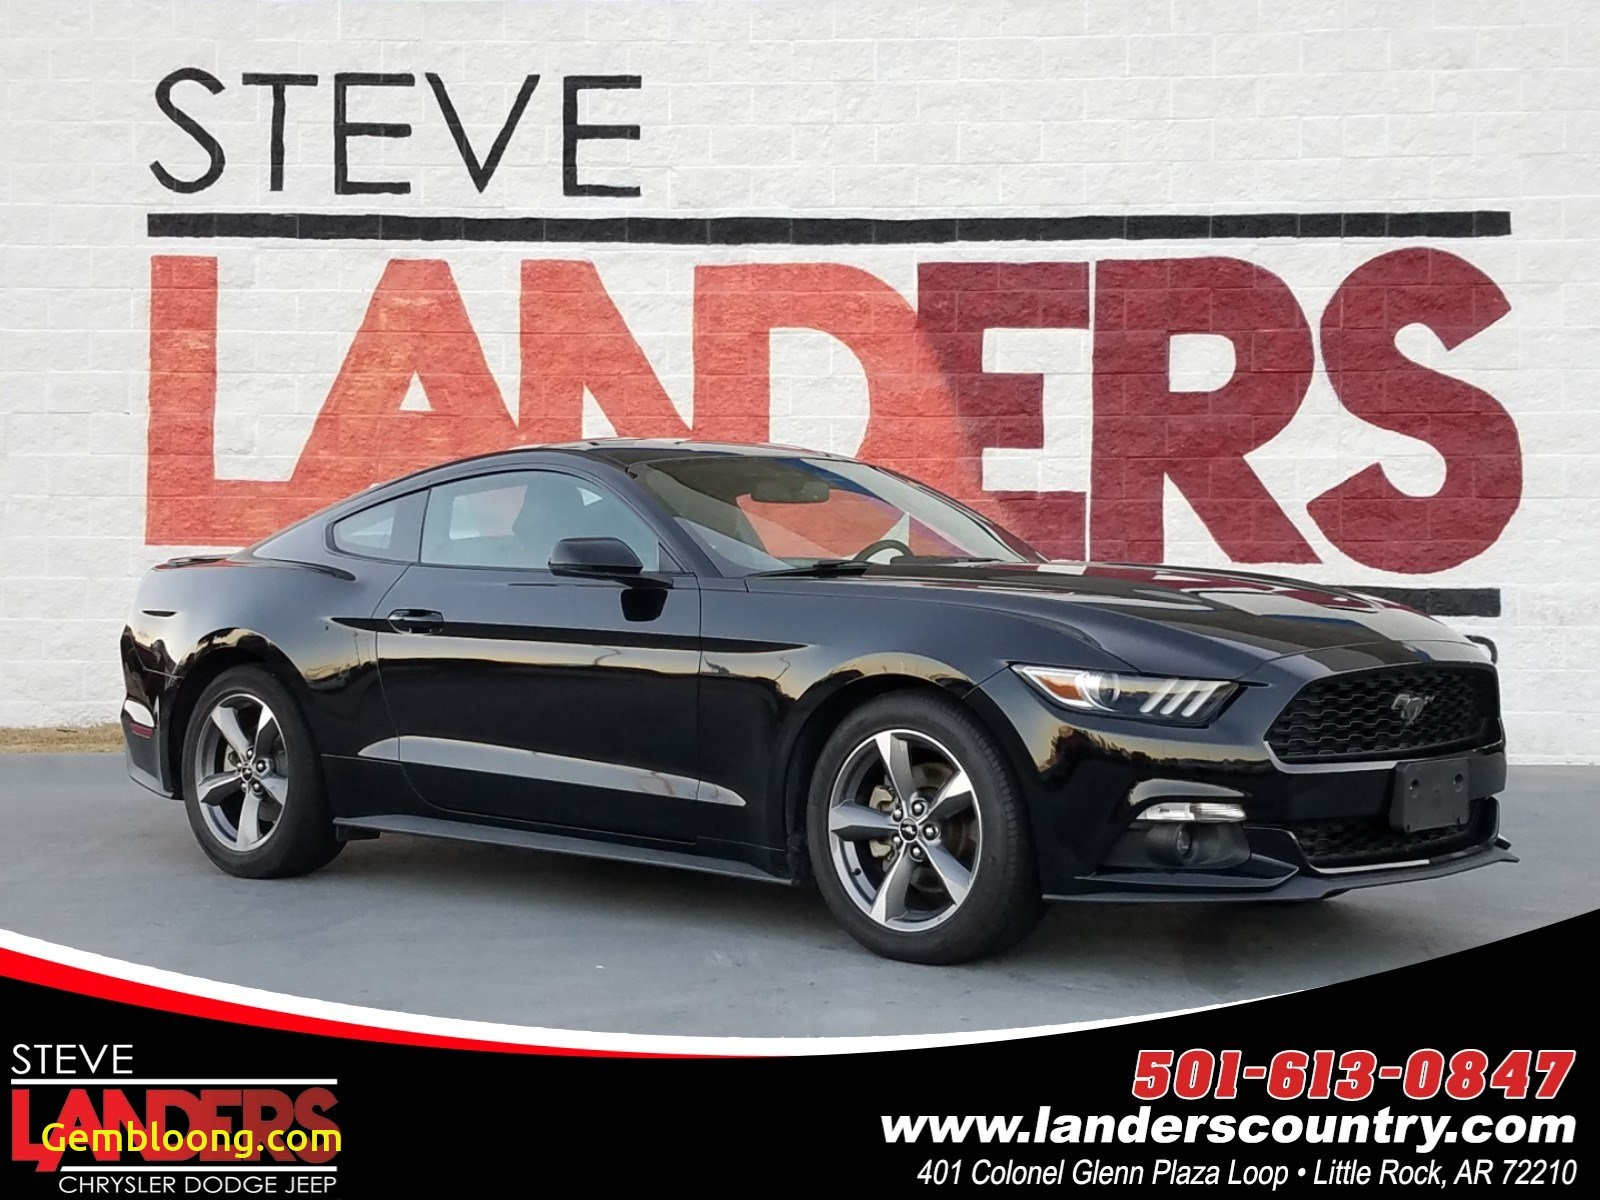 2015 ford Mustang Ecoboost Awesome Pre Owned 2015 ford Mustang Ecoboost Rwd 2dr Car